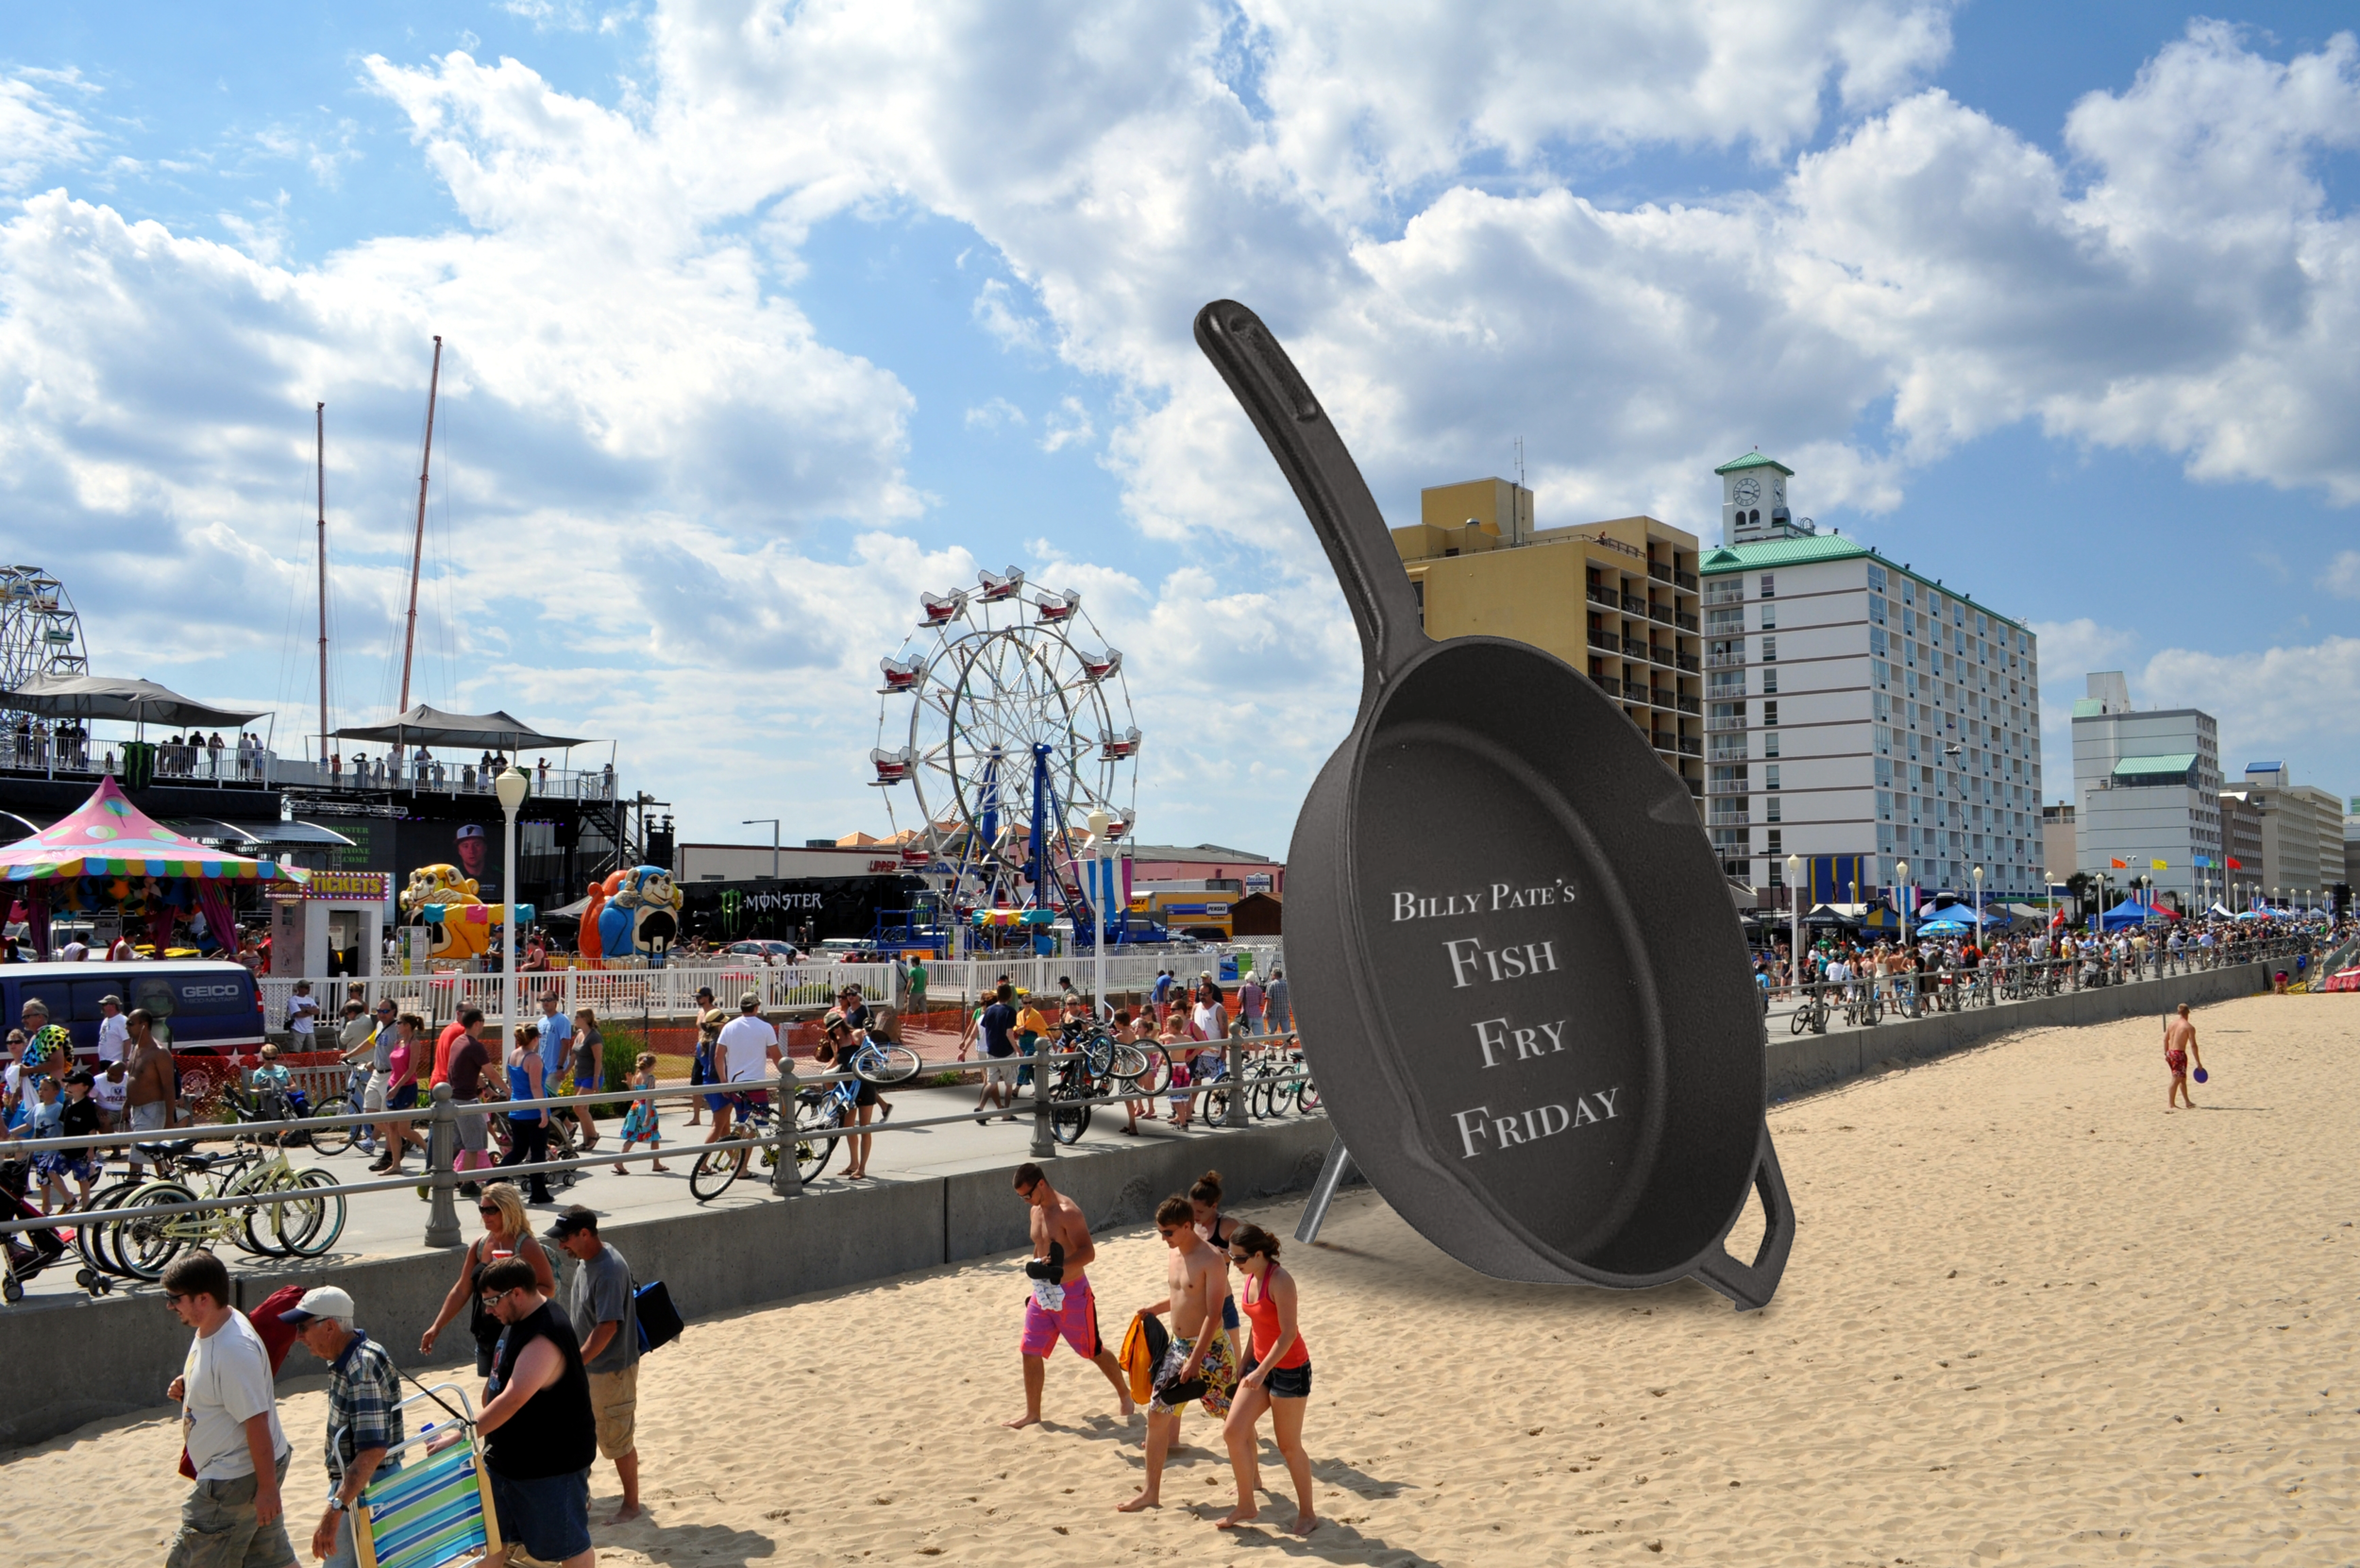 Billy Pate hosts Fish Fry Fridays at popular saltwater fishing locations, such as Ft. Lauderdale. A giant frying pan is used at the event for all of the large saltwater fish caught with Billy Pate reels.